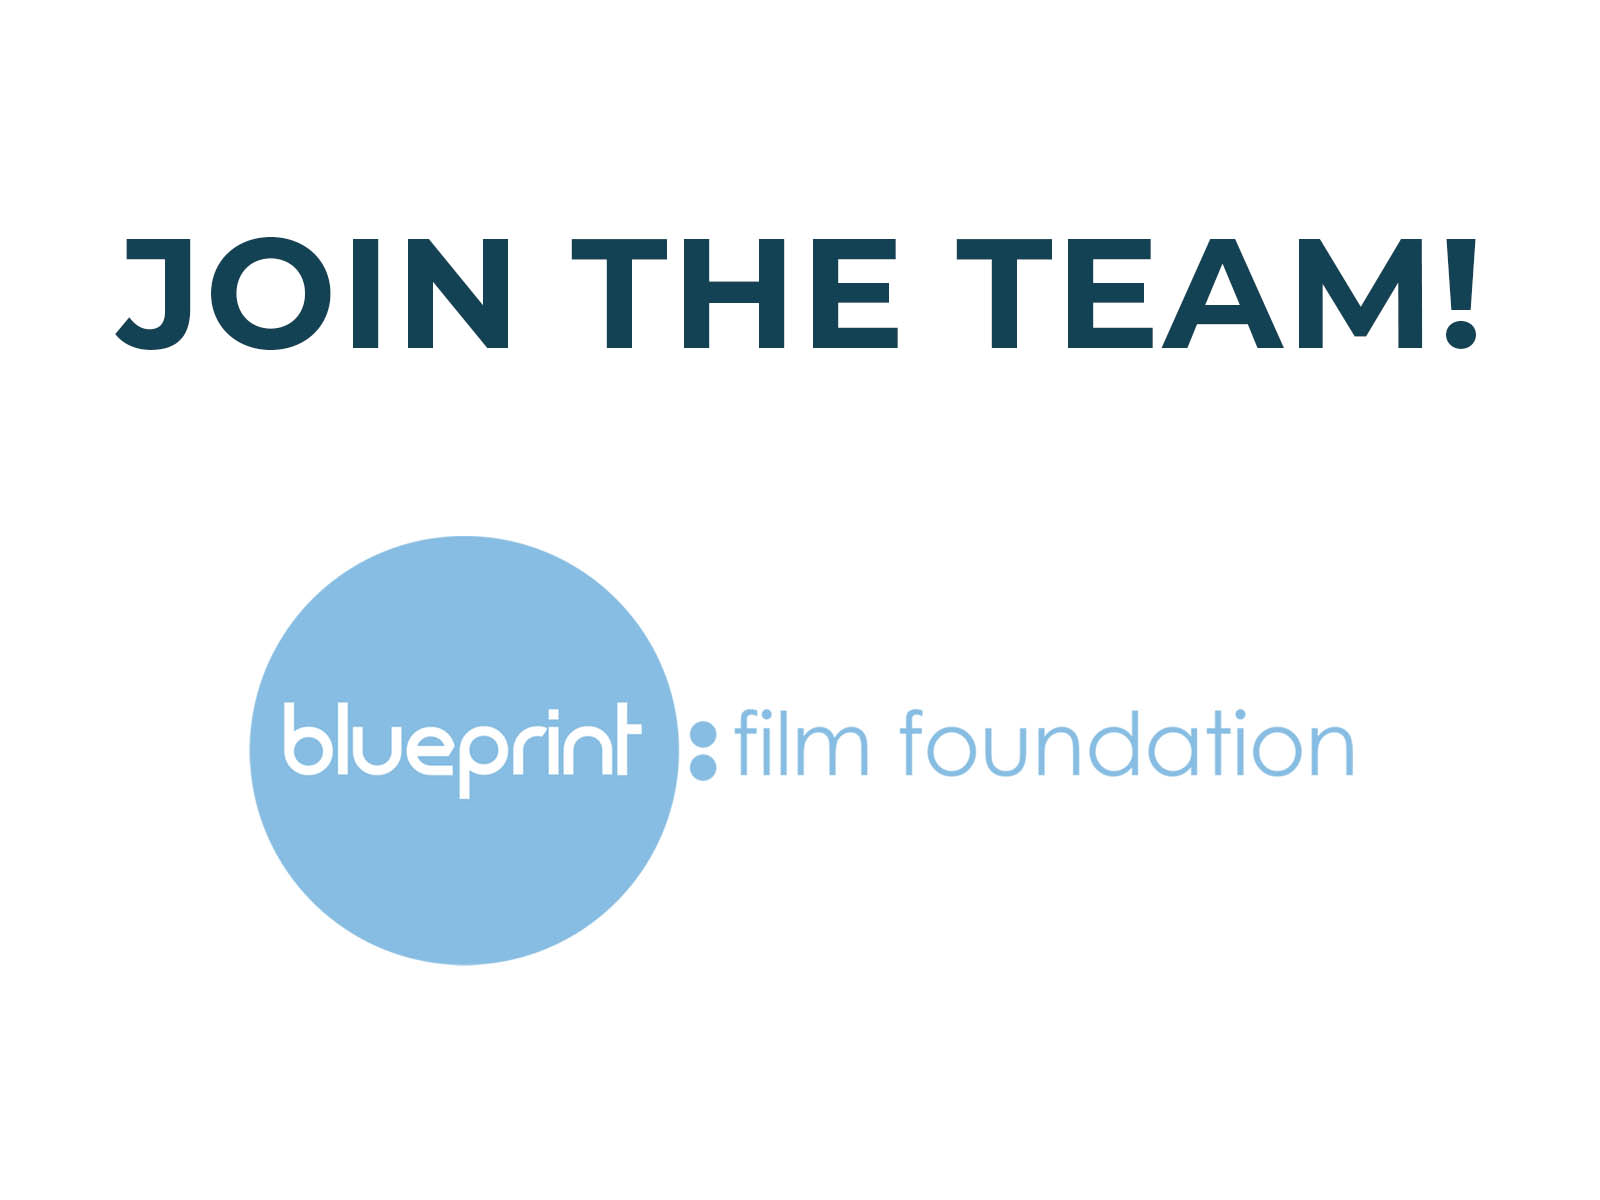 Job opportunity at blueprint film foundationblueprint film job opportunity at blueprint film foundation malvernweather Choice Image